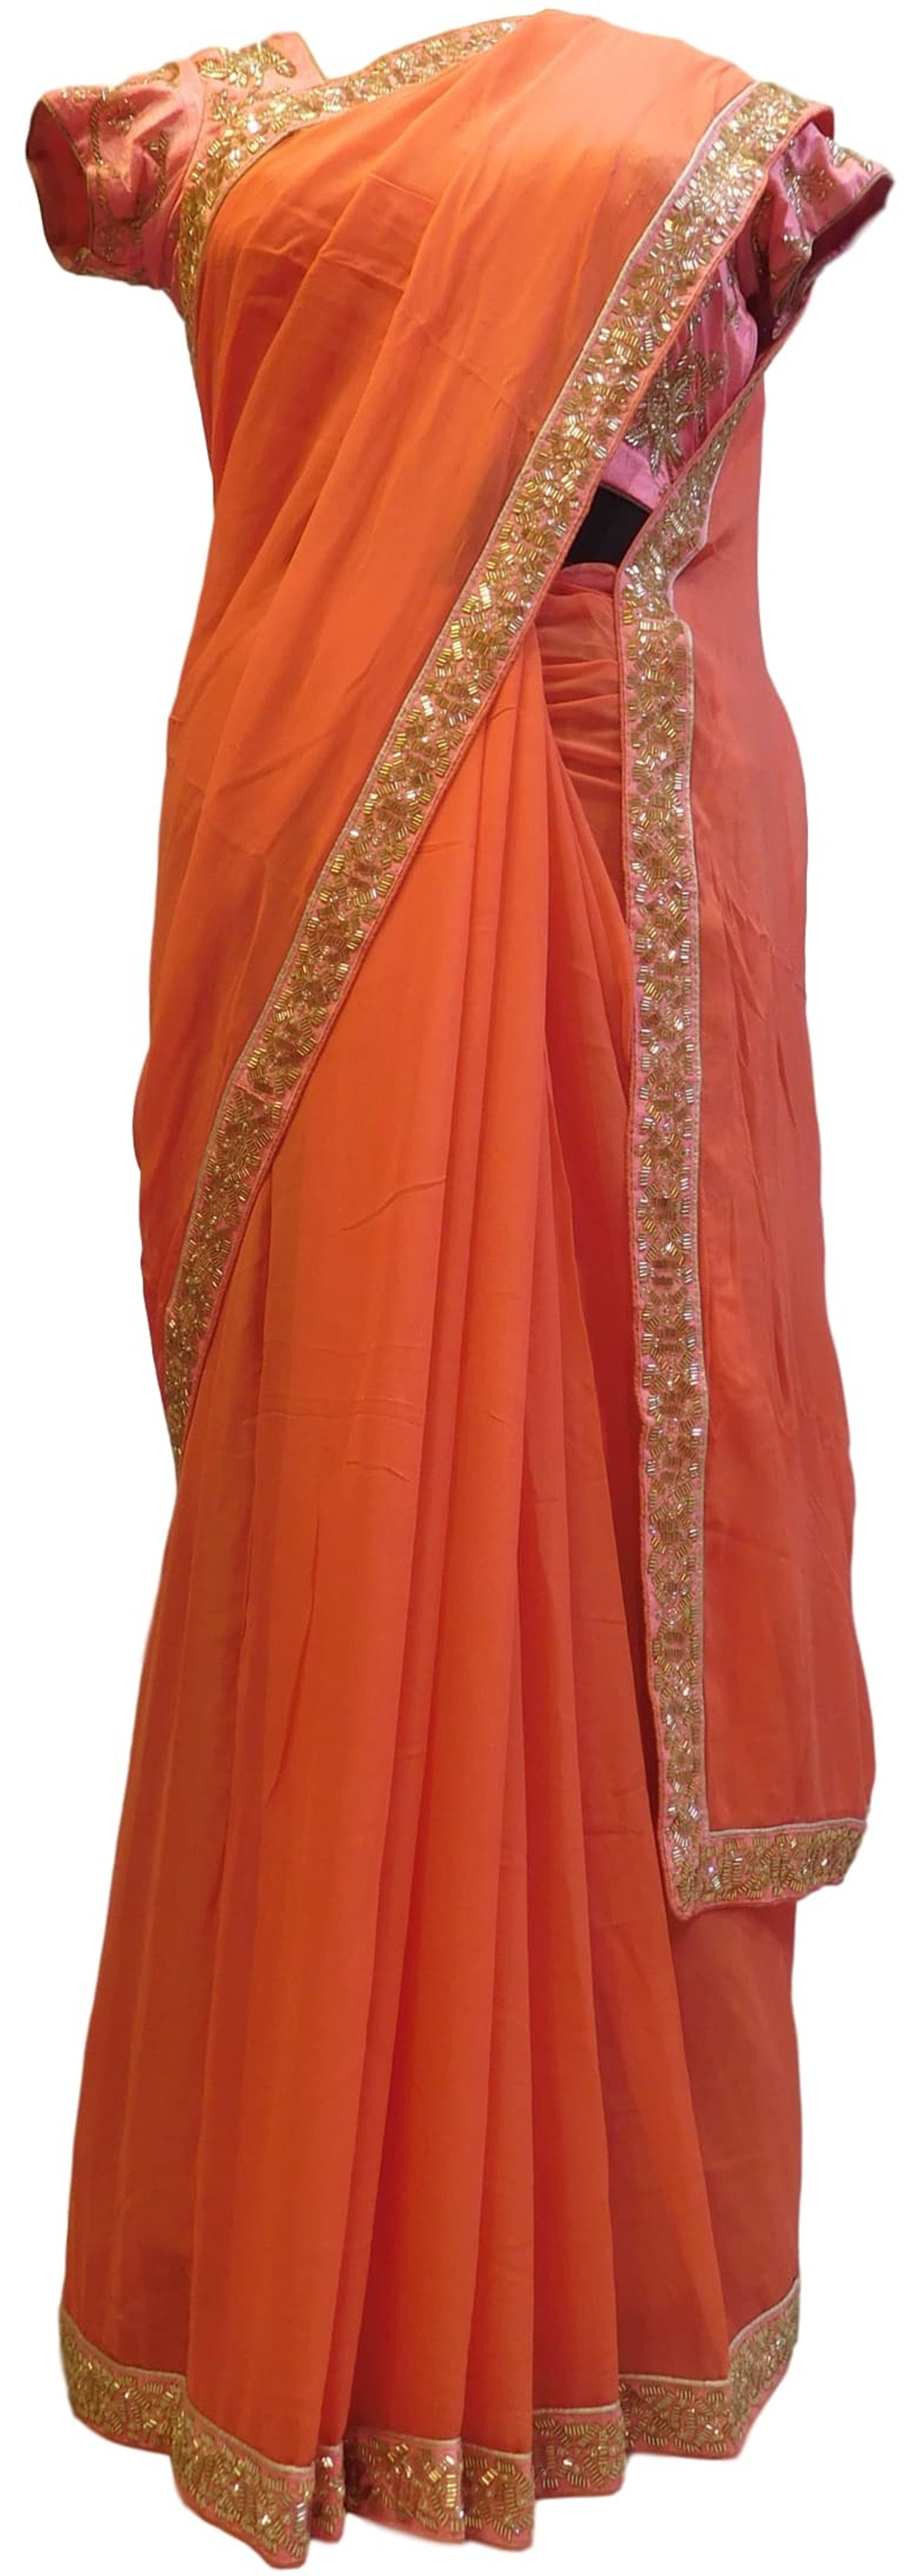 Orange Designer Georgette (Viscos) Hand Embroidery Cutdana Beads Work Saree Sari With Stylish Stitched Blouse